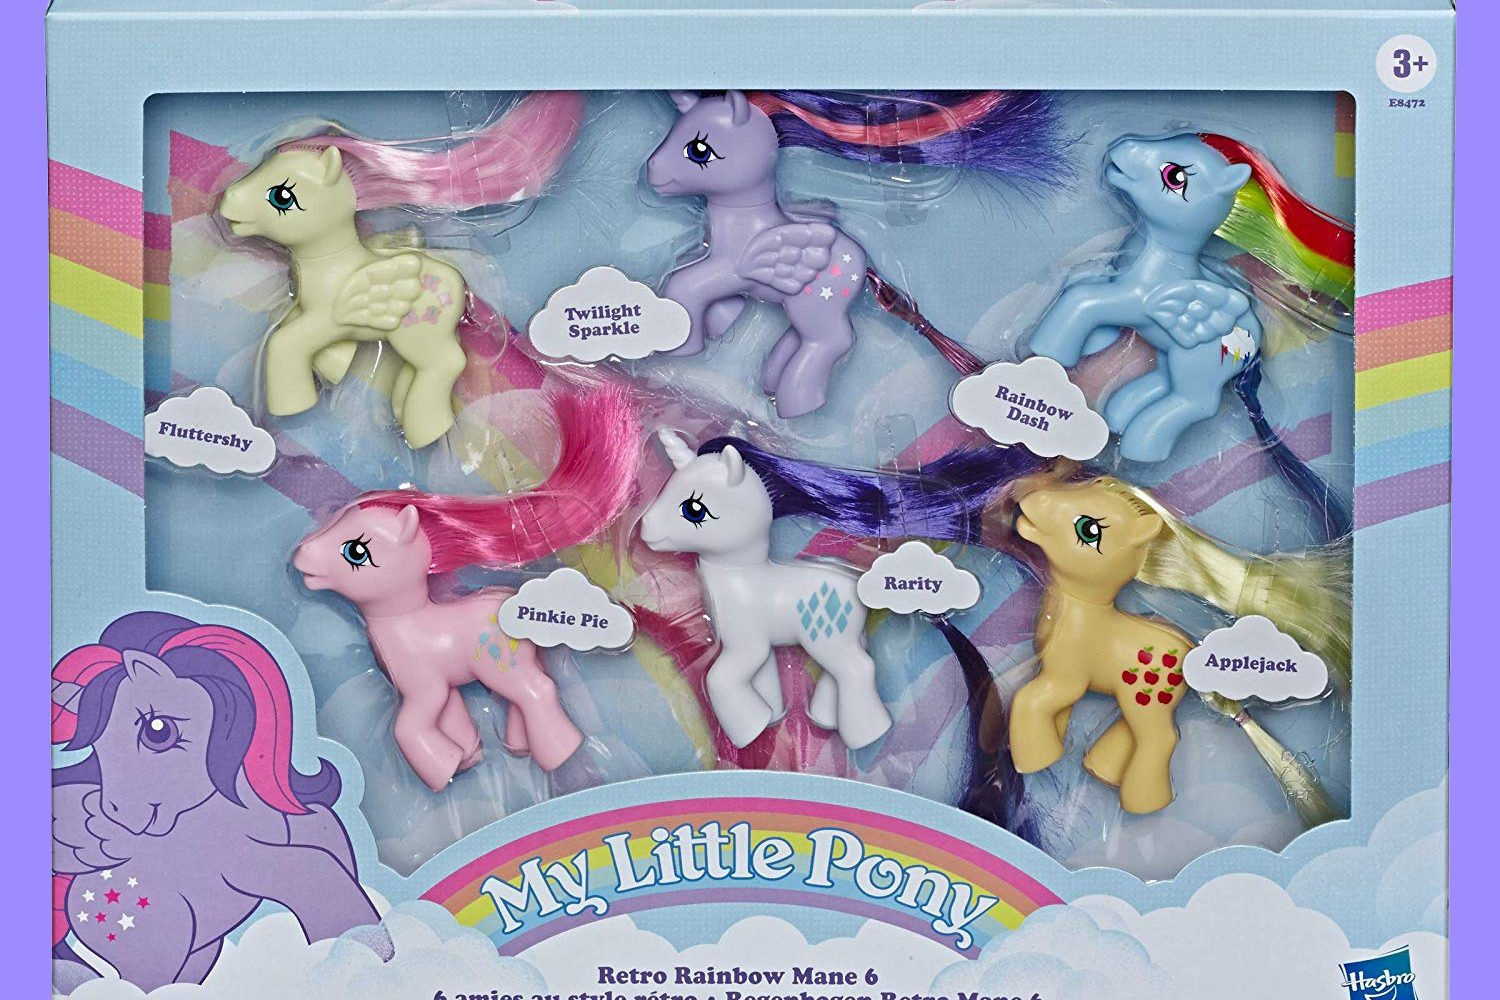 My Little Pony Retro Rainbow Mane 6 -- 80s-Inspired Collectable Figures with Retro Styling where to Buy